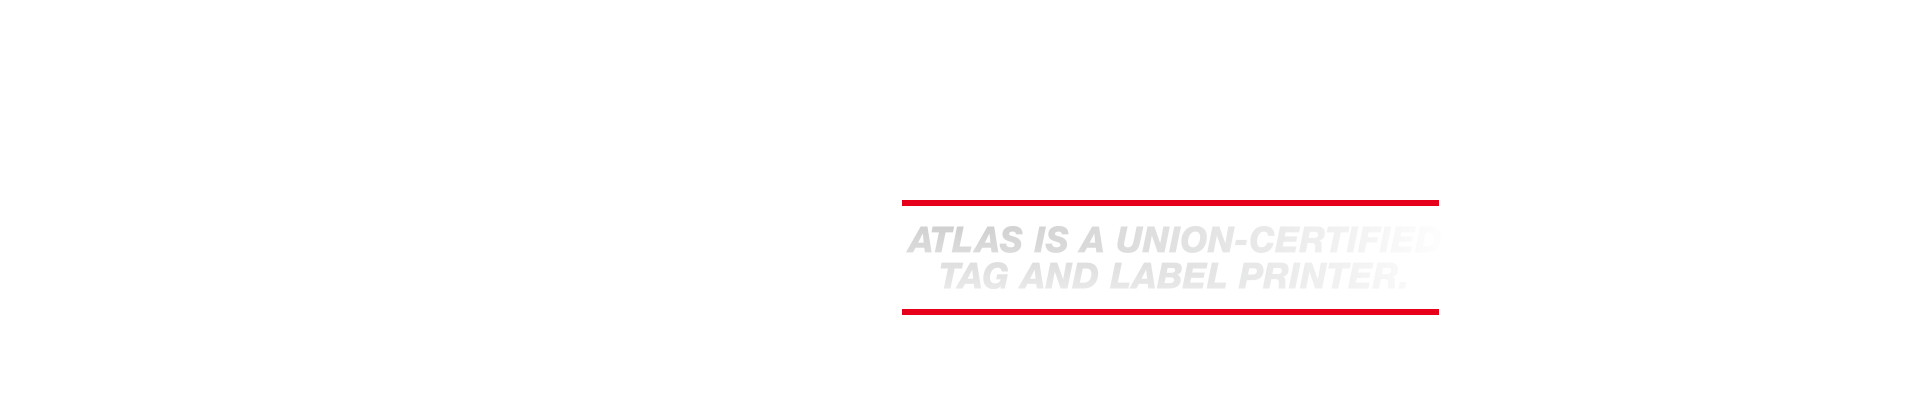 atlas is a union certified printer